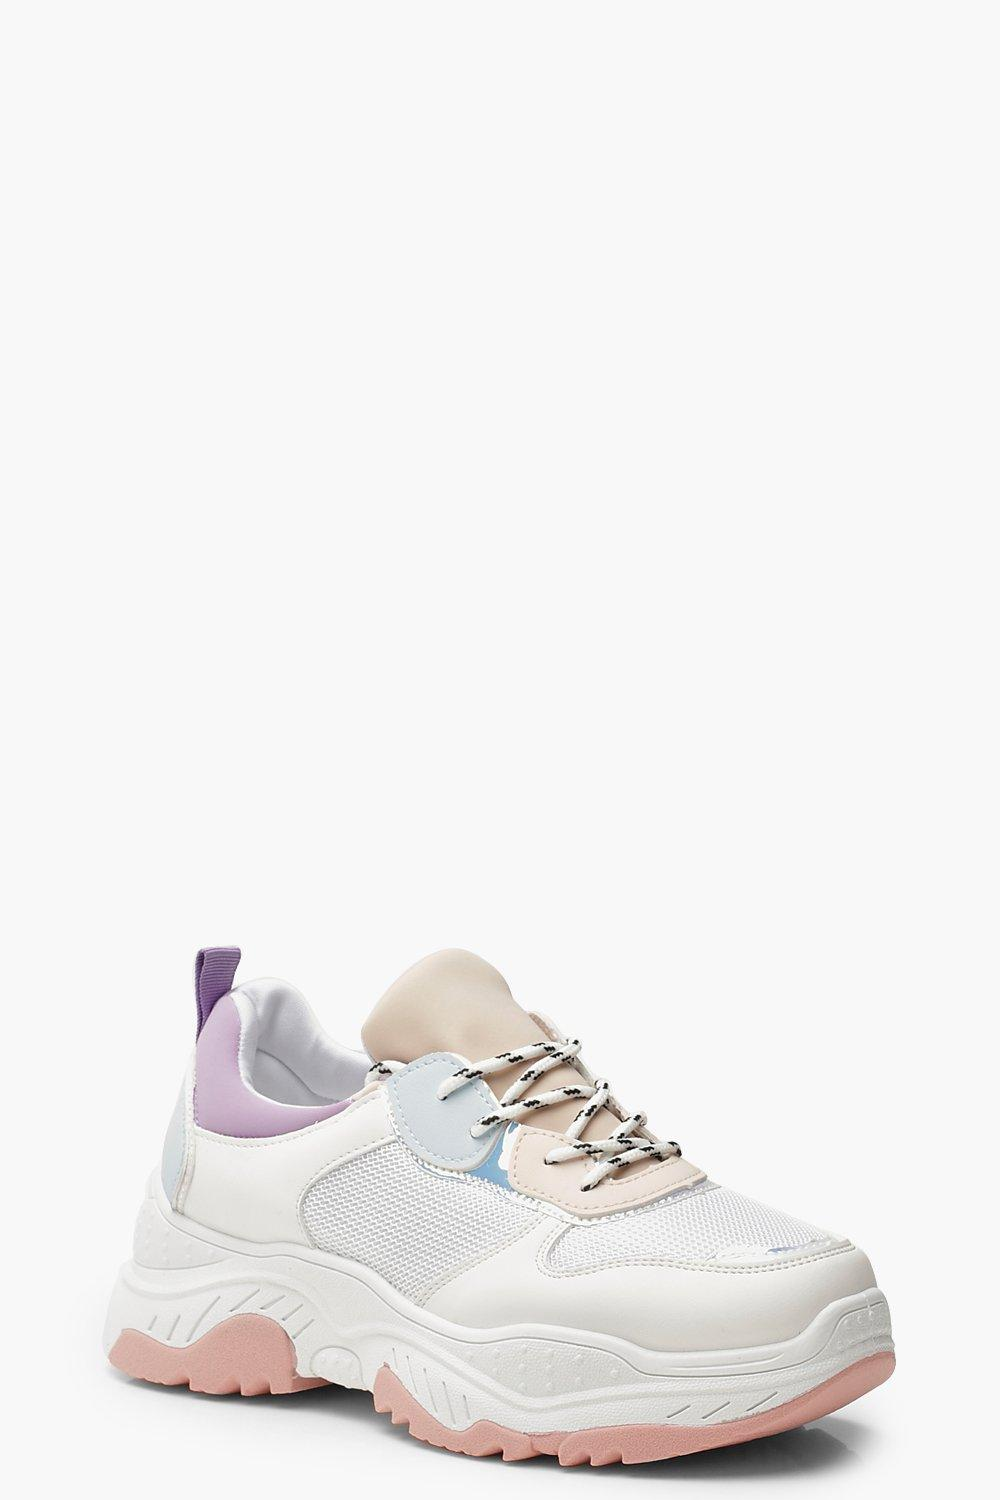 half off b500c 2a574 Colorblock-Sneaker in Pastell mit dicker Sohle | Boohoo